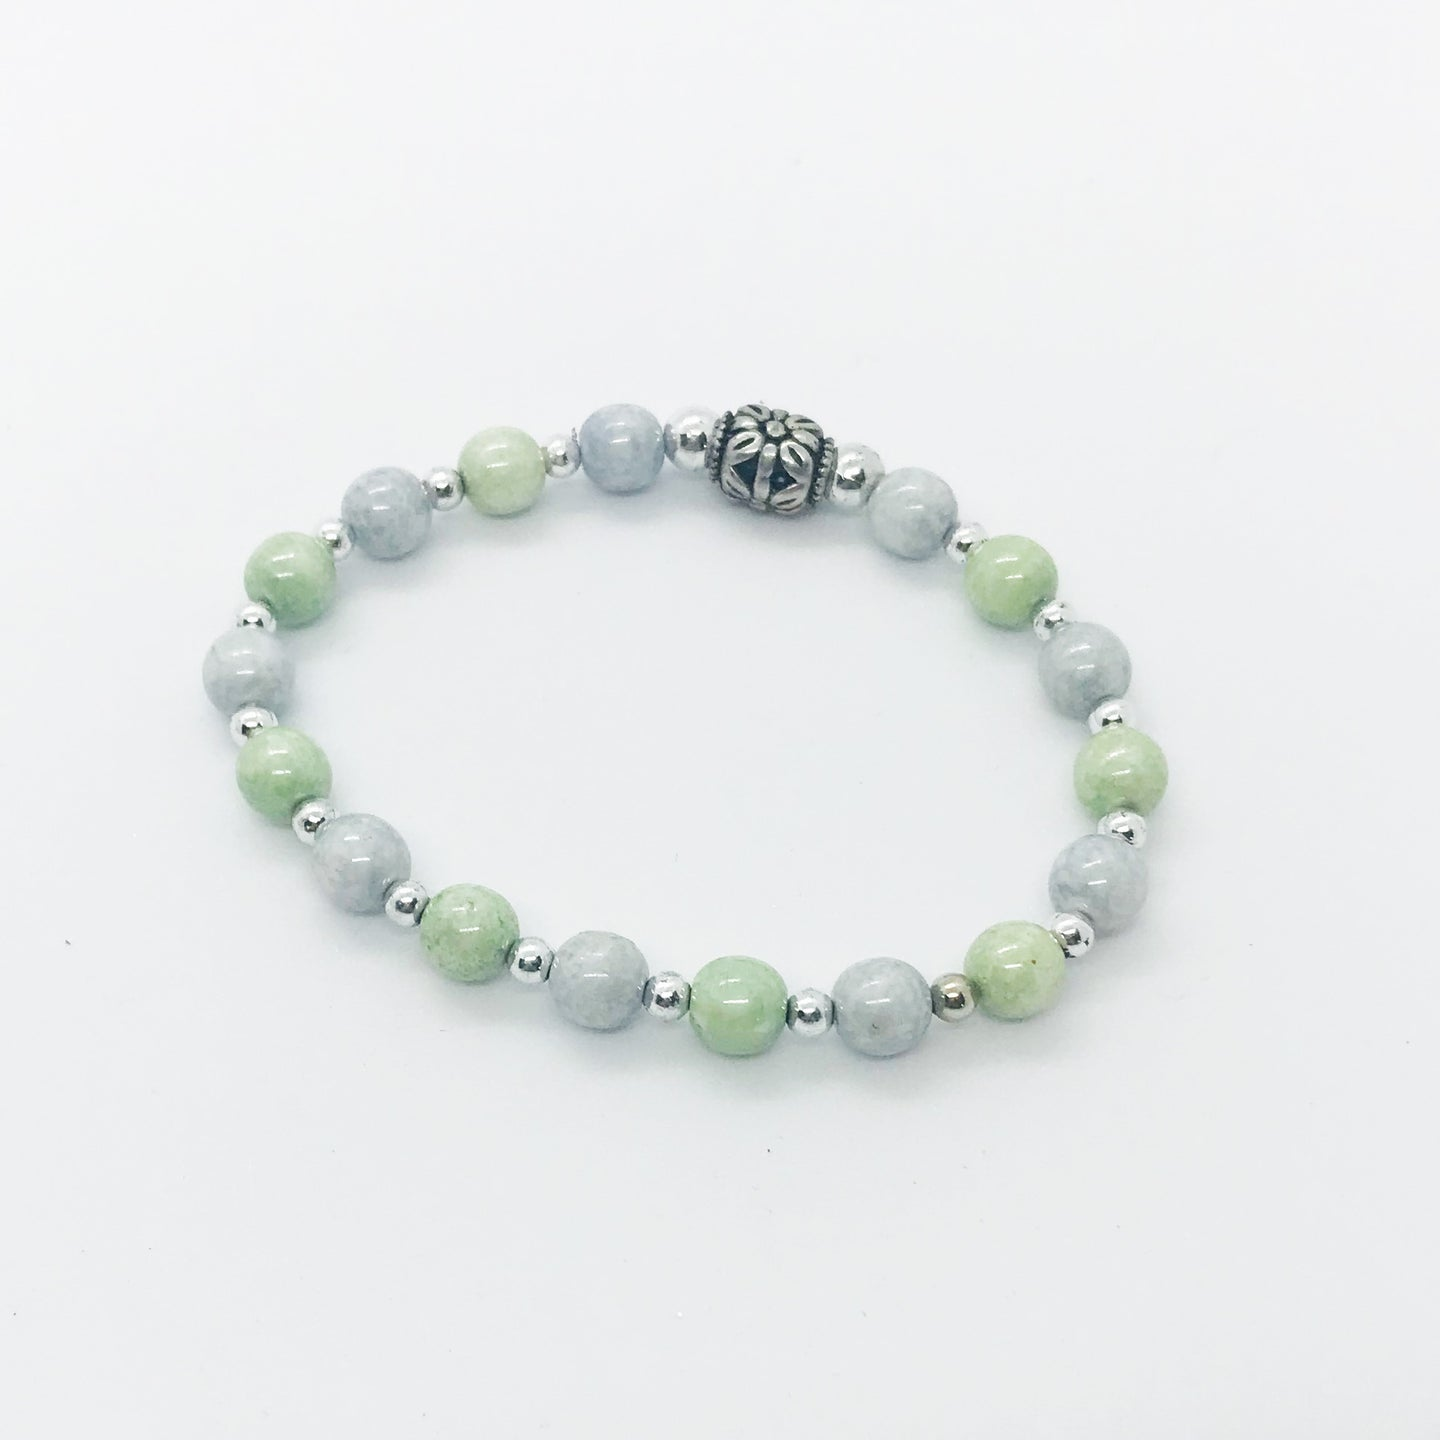 Glass Bead Stretchy Bracelet - B613